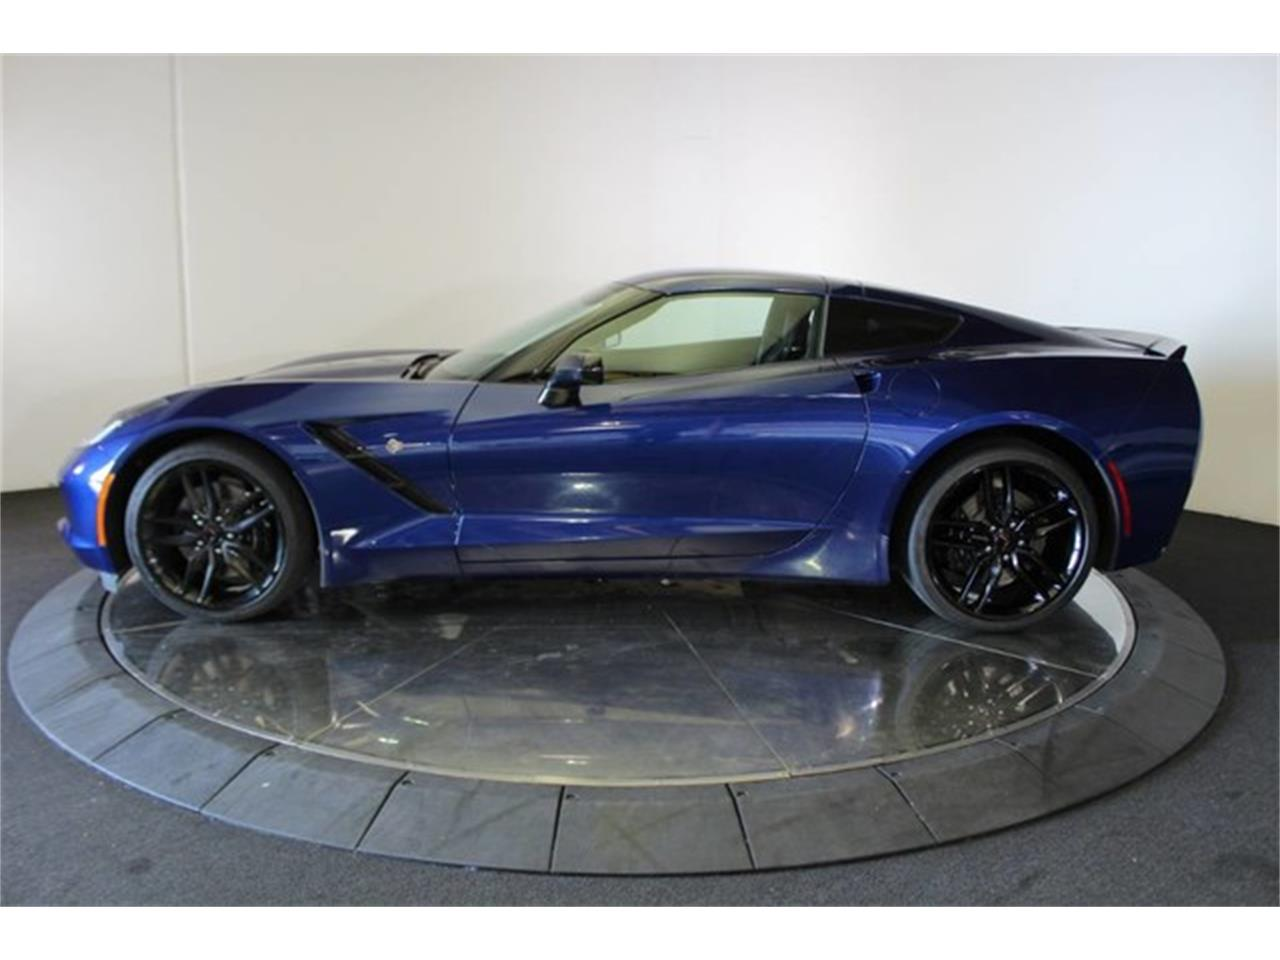 2018 Chevrolet Corvette (CC-1246401) for sale in Anaheim, California